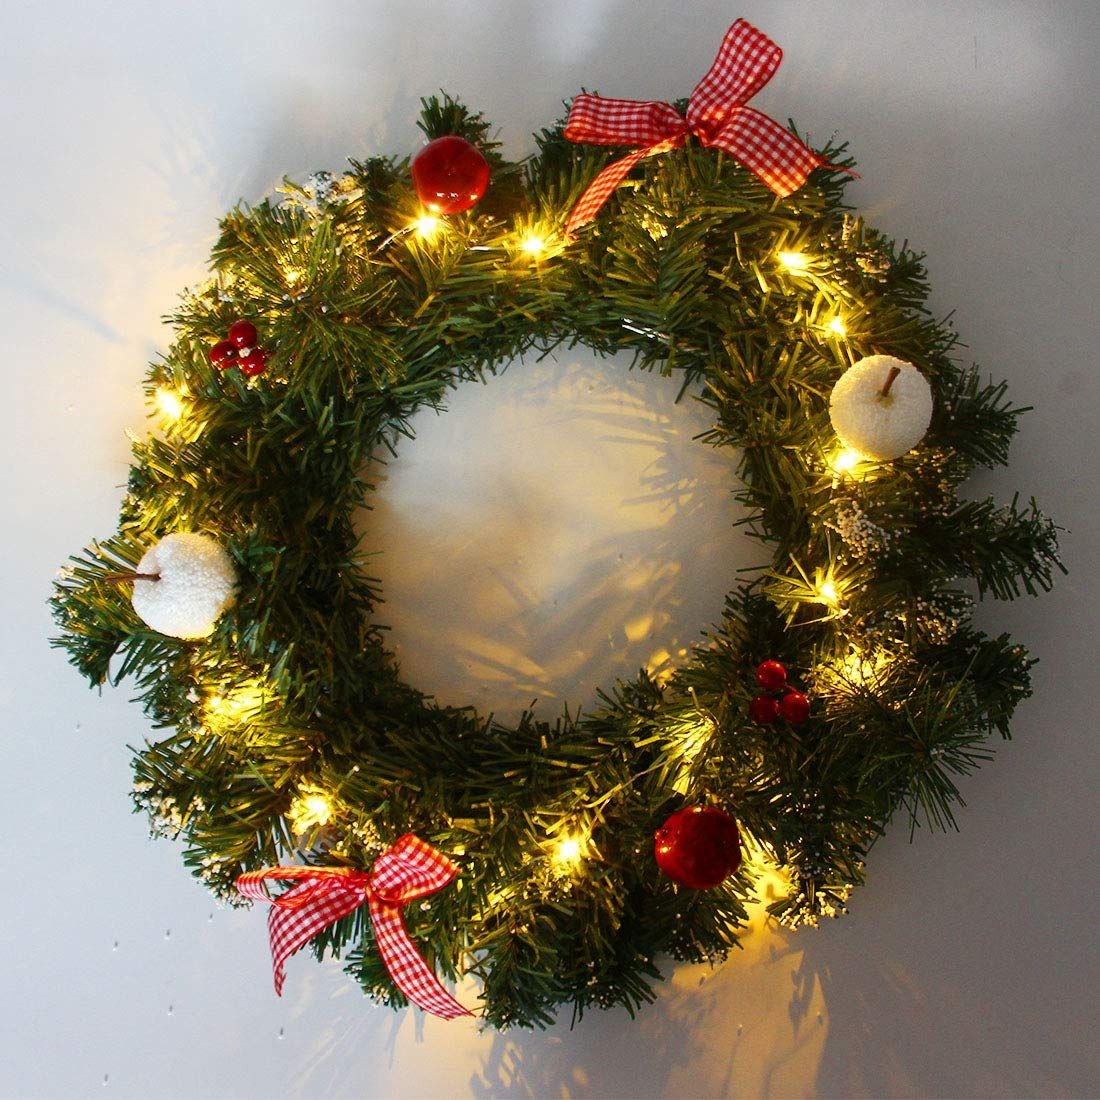 Hometook Christmas Wreaths With Lights For Front Door 12 Inch Artificial Xmas Pine Wreat With Images Christmas Wreaths Christmas Decorations Christmas Wreaths With Lights